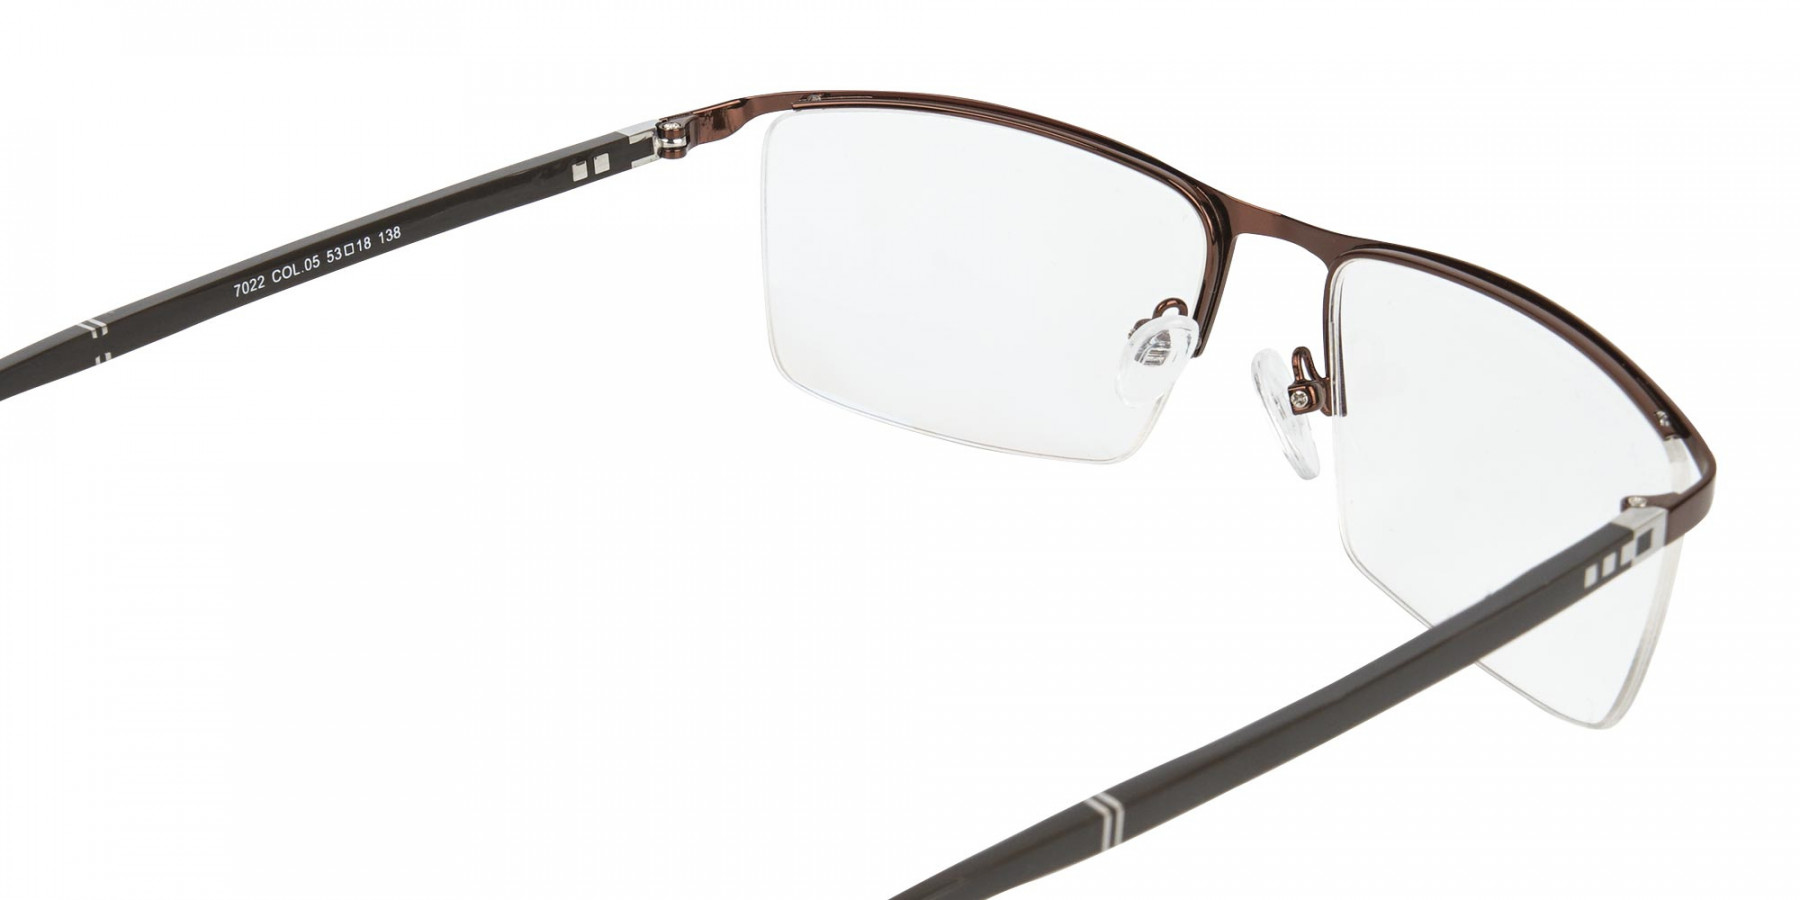 Brown and Black Semi-Rim Glasses-1